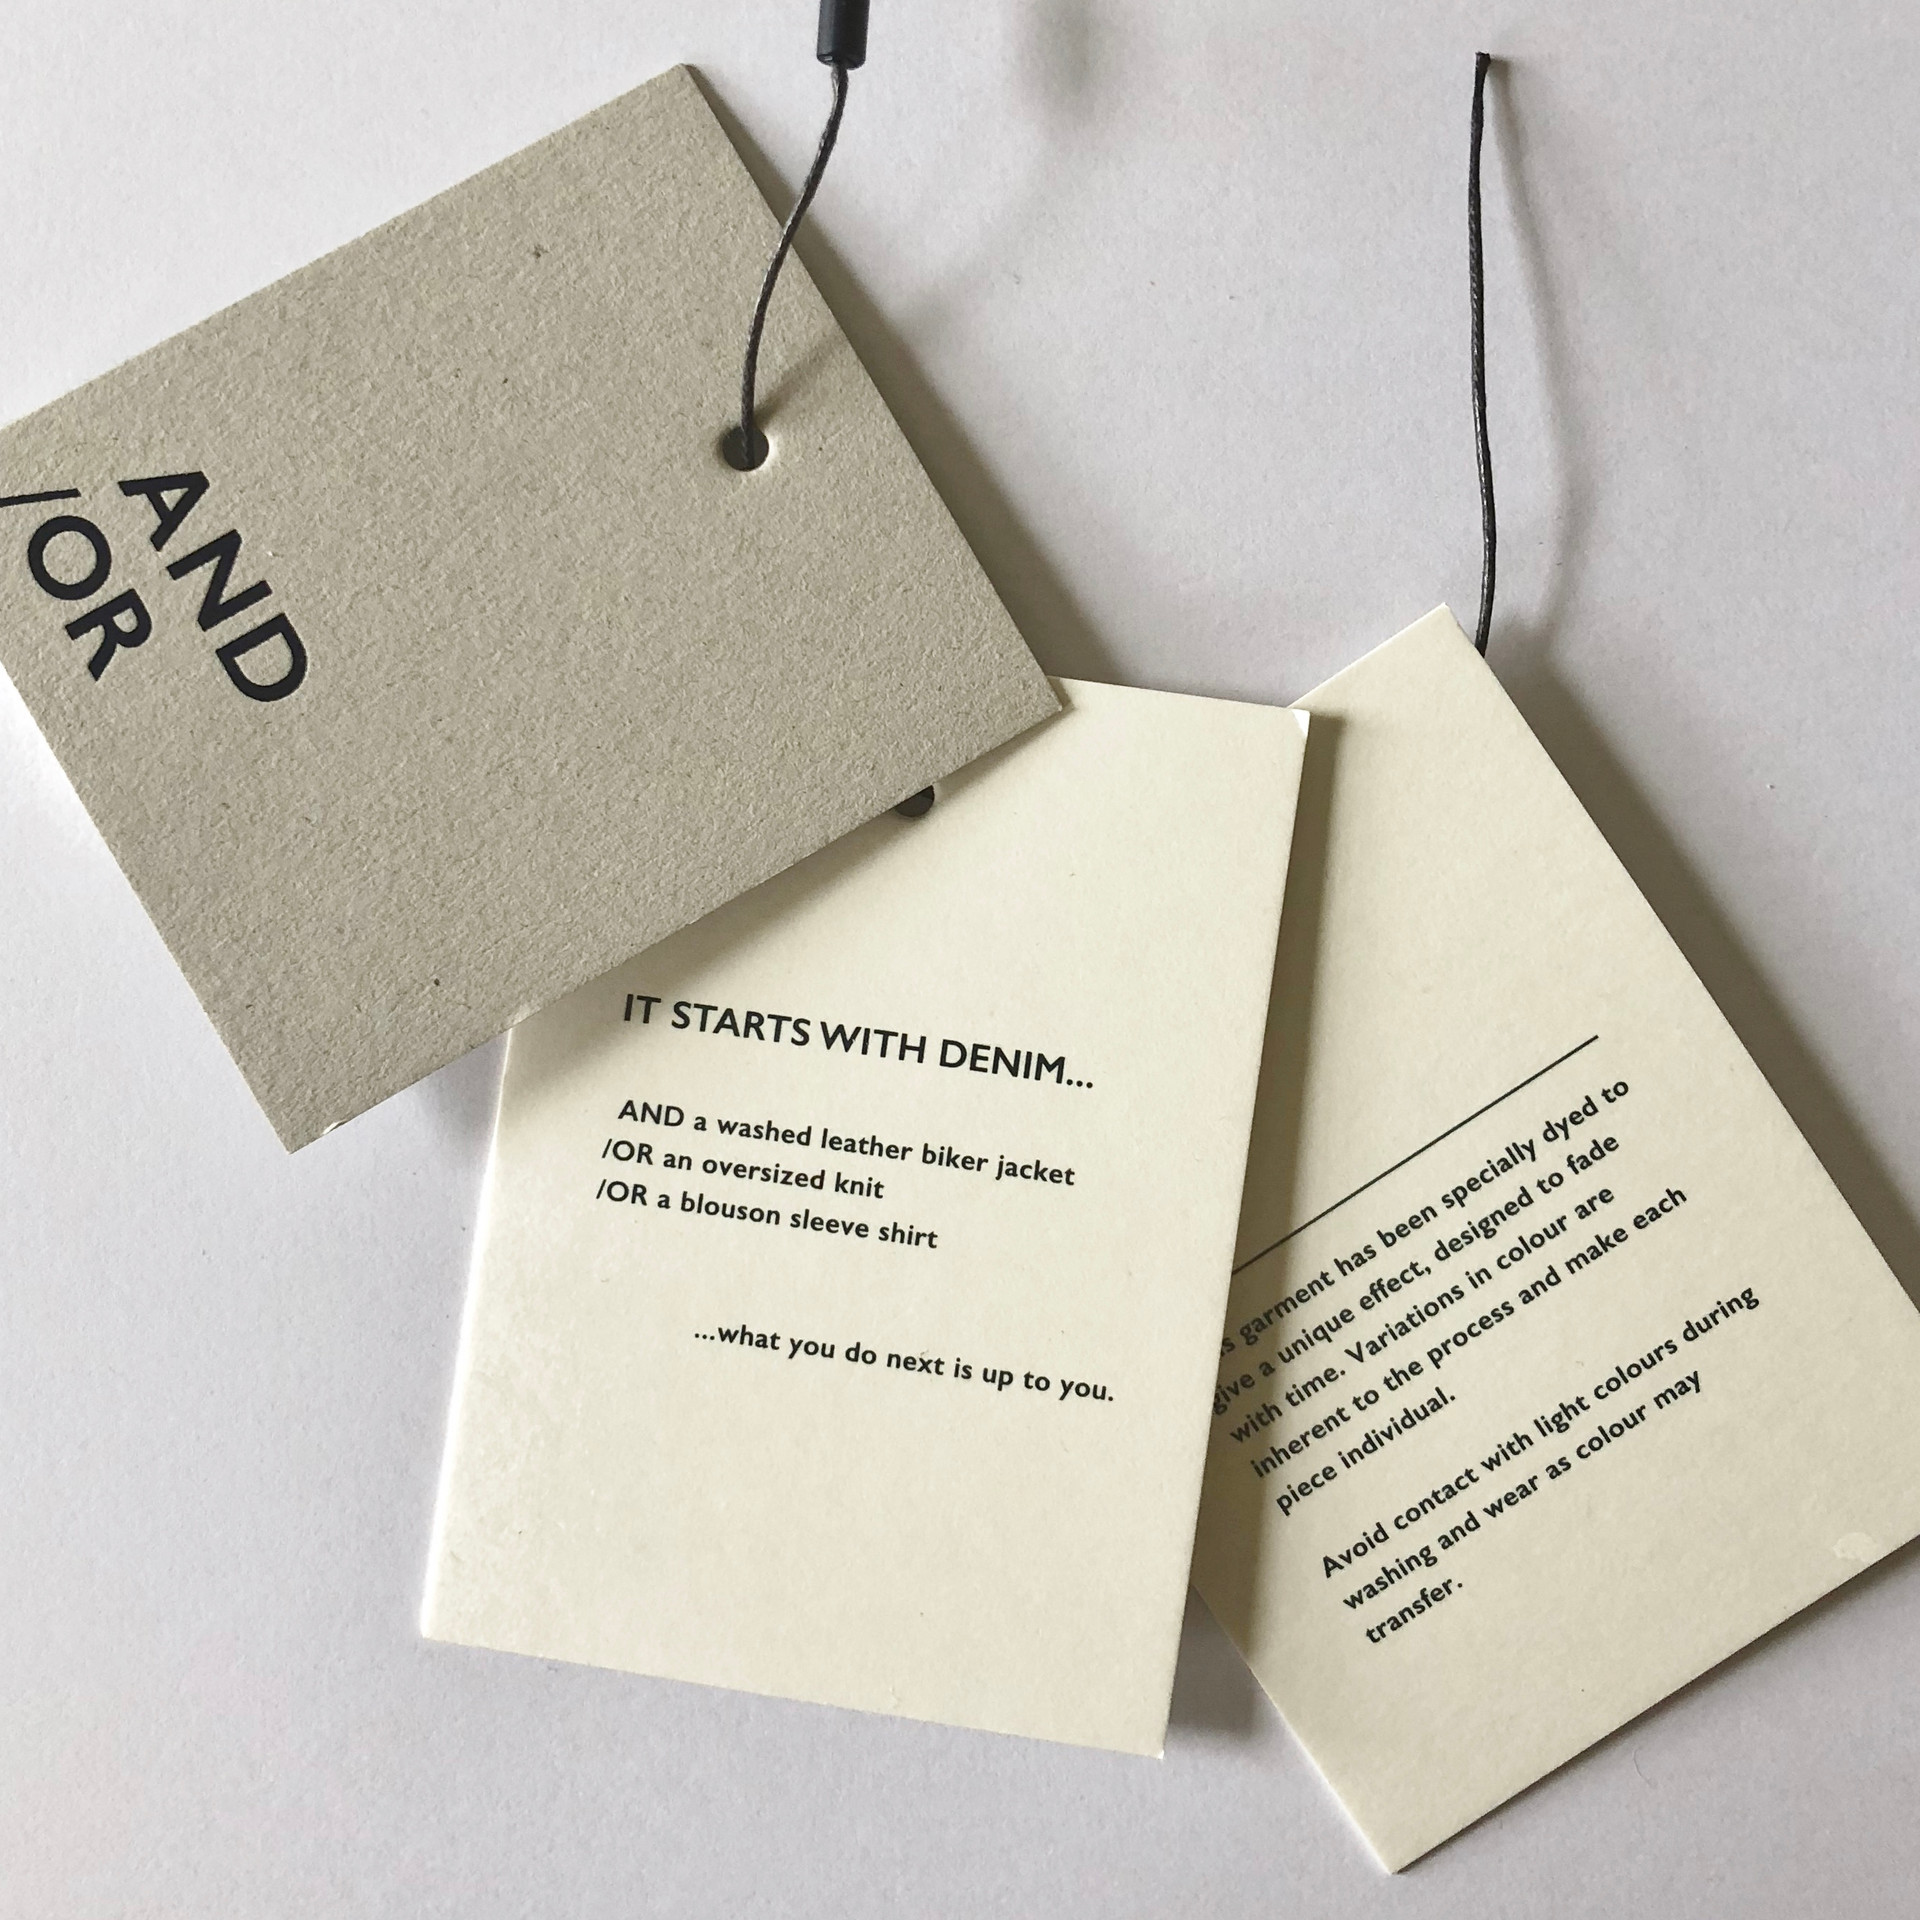 ANDOR brand launch copywriting tags 2.jp